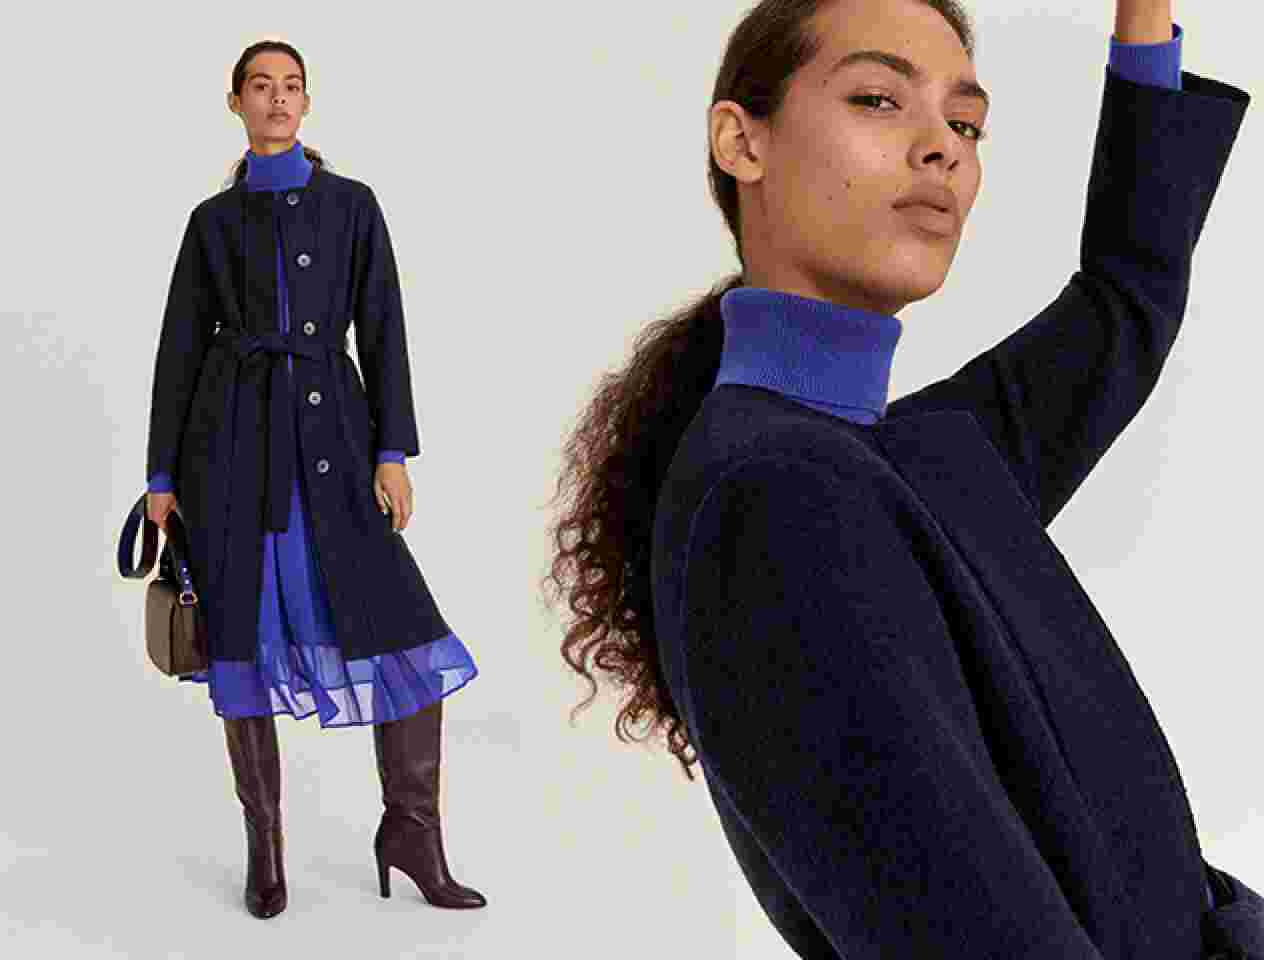 Model in a navy coat and blue dress